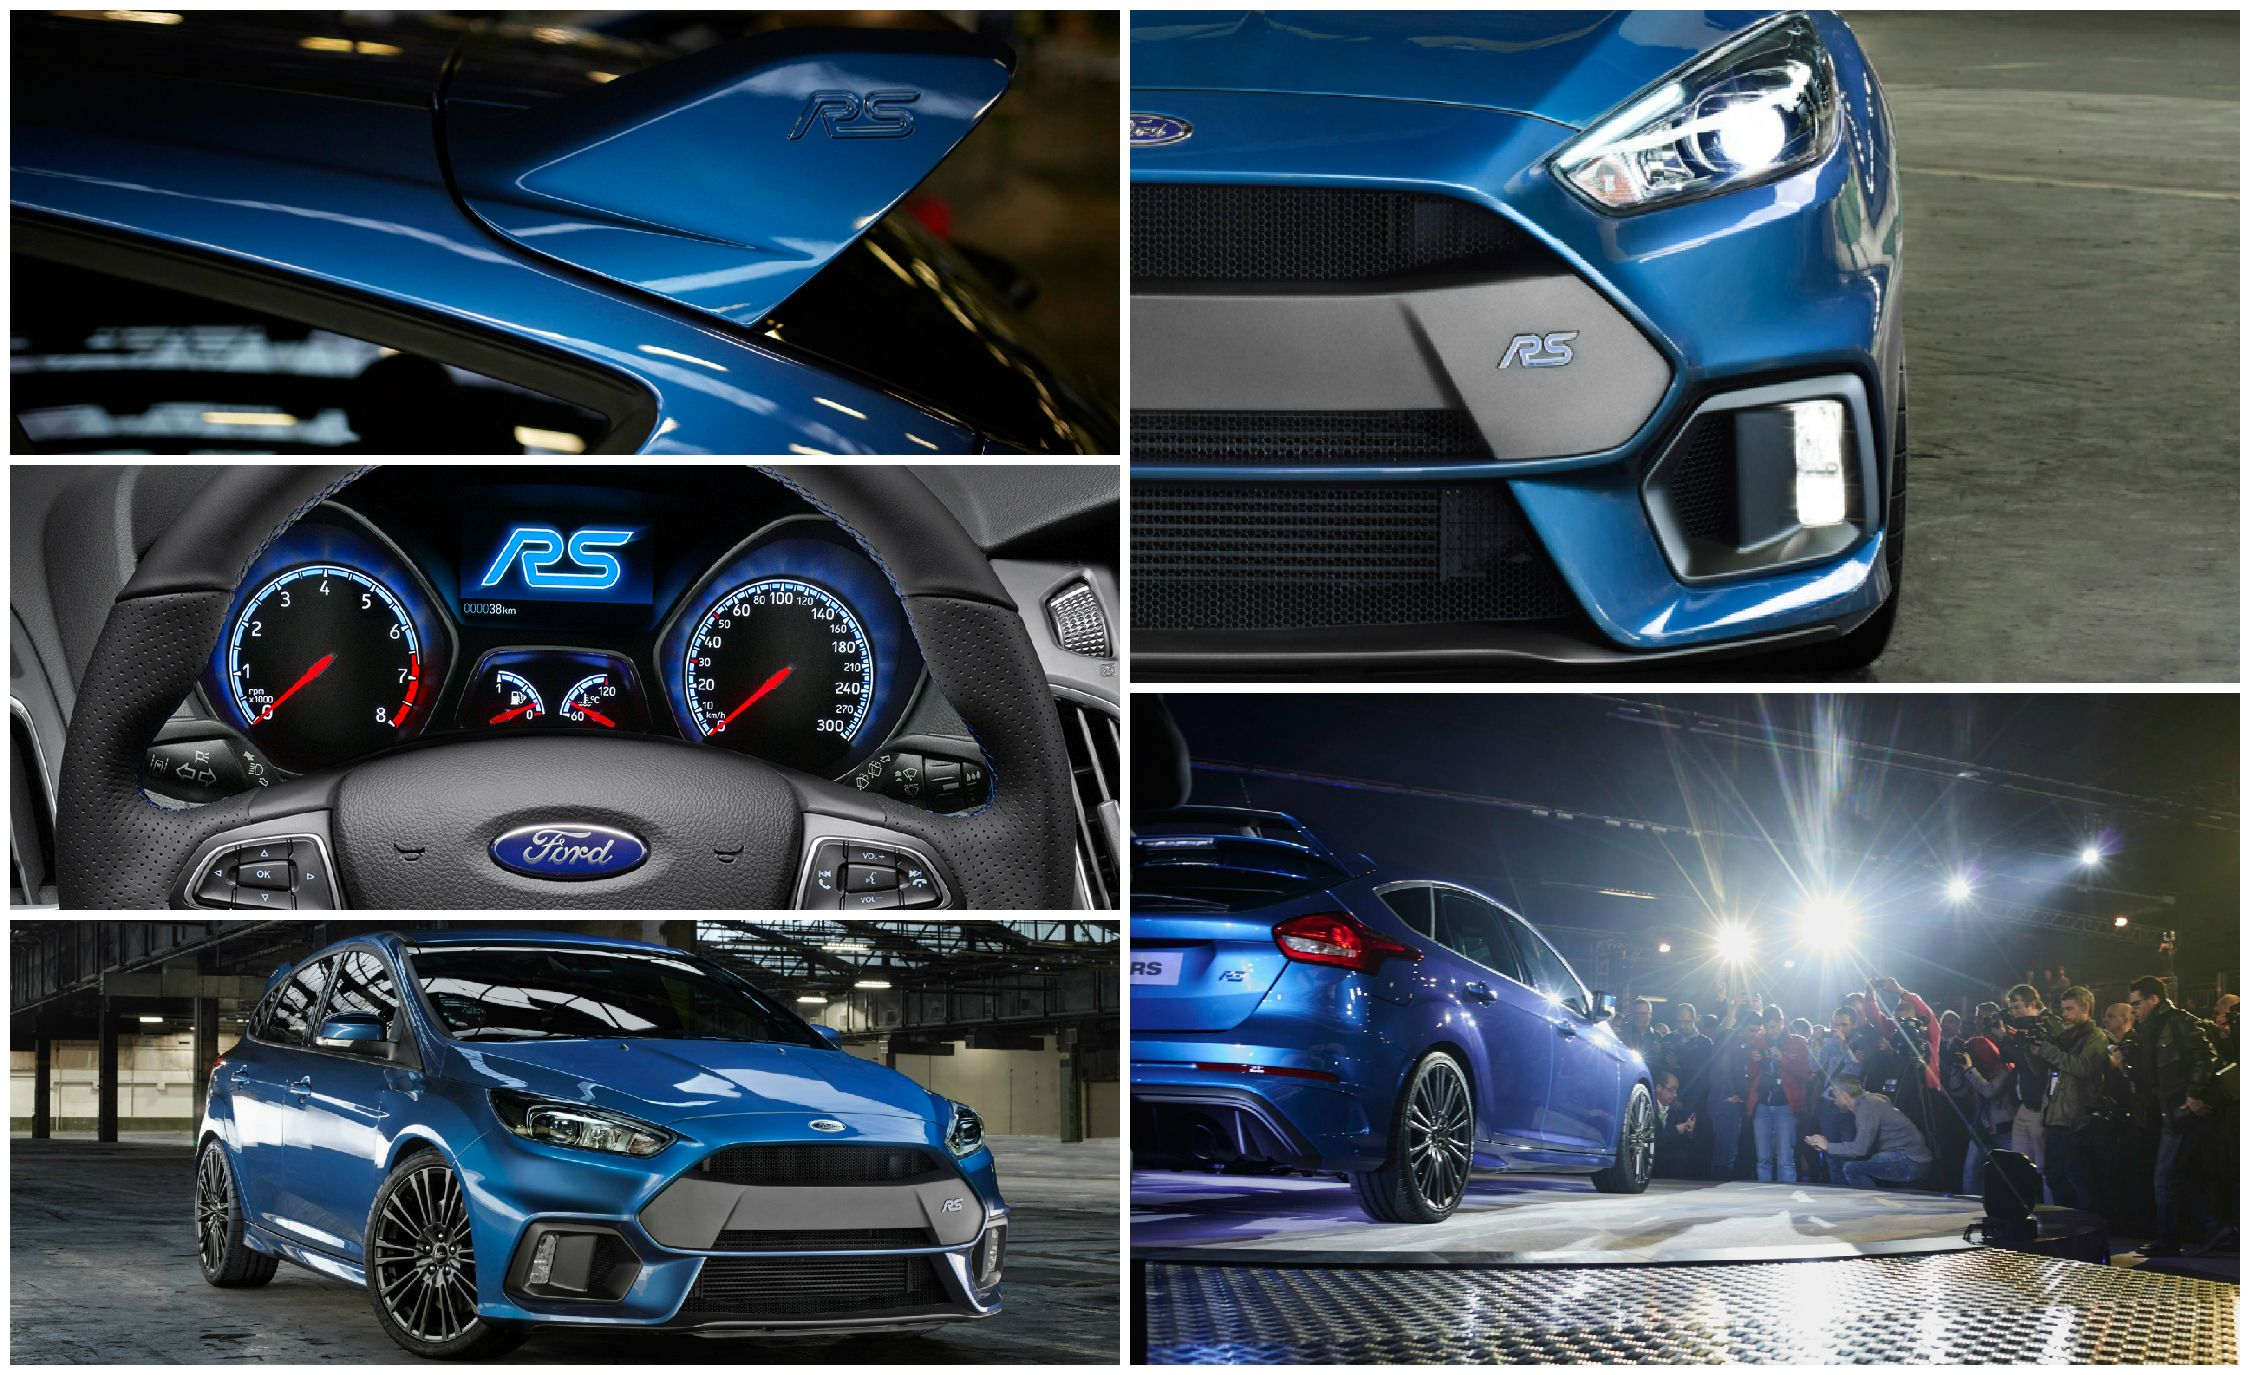 15 things you need to know about the 2016 ford focus rs | flipbook